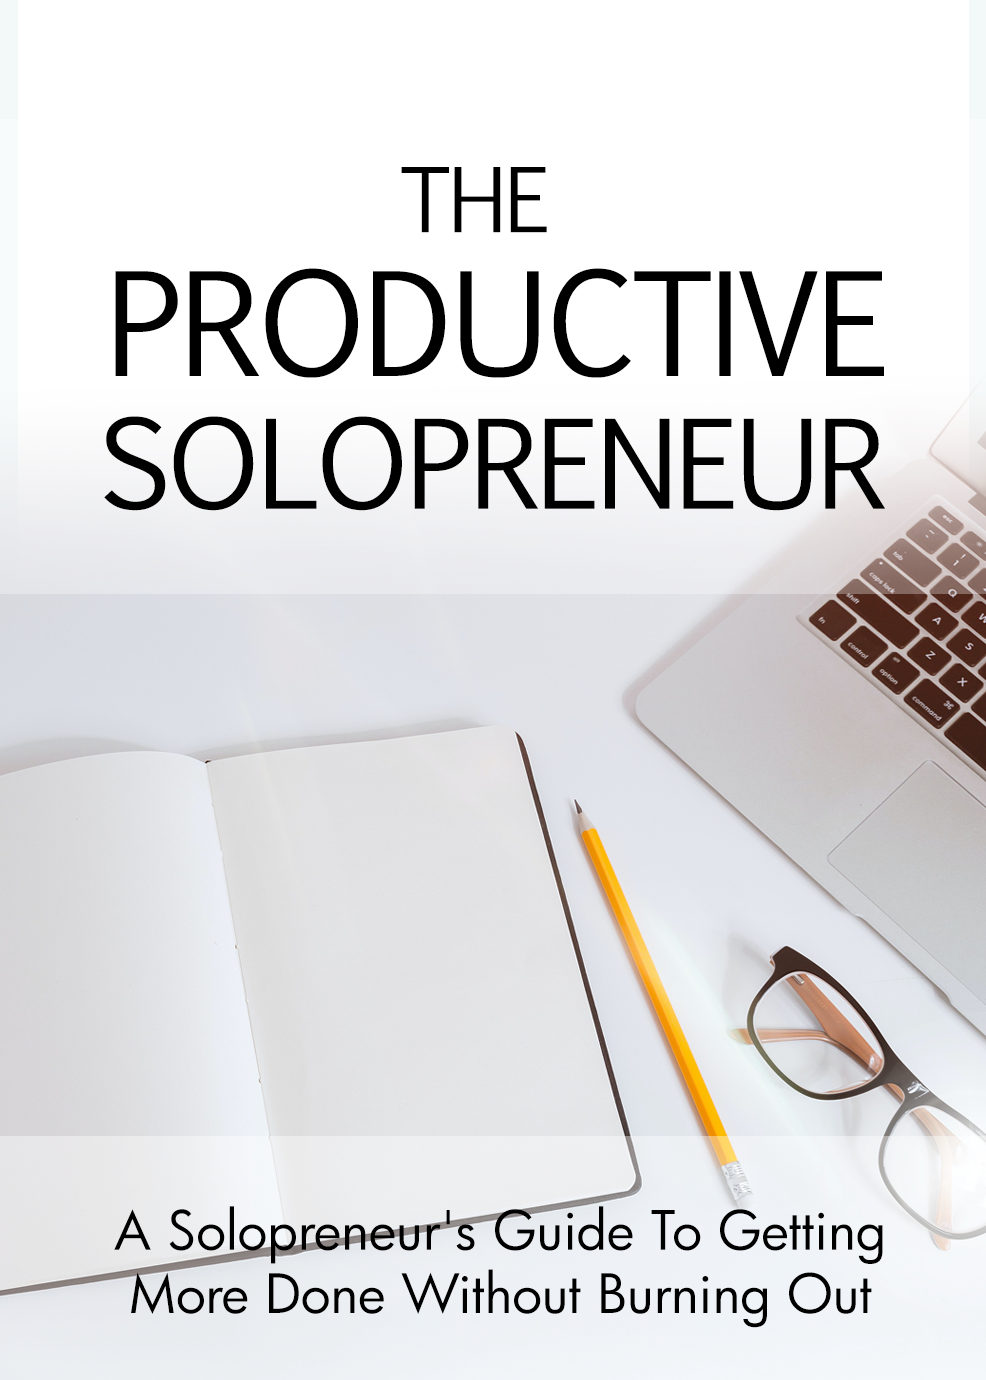 The Productive Solopreneur (A Solopreneur's Guide To Getting More Done Without Burning Out) Ebook's Ebook Image